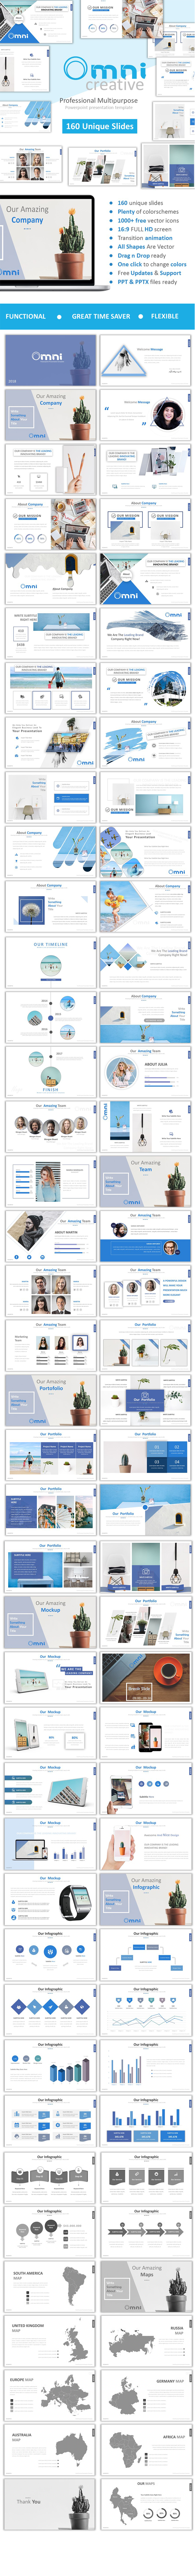 GraphicRiver Omni Creative Powerpoint 21112632